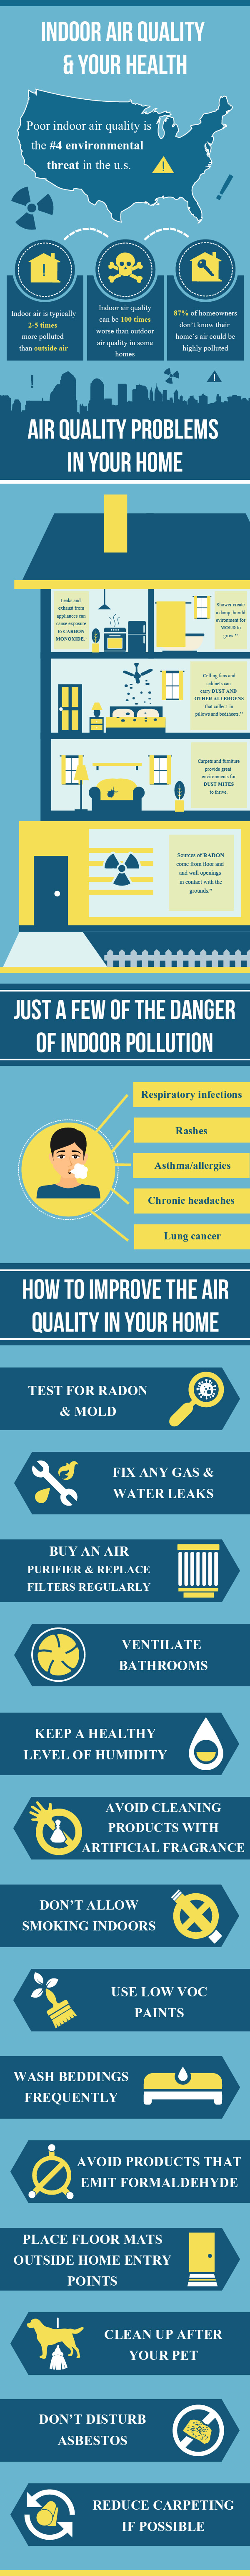 Bad Indoor Air Quality and How to Fix it